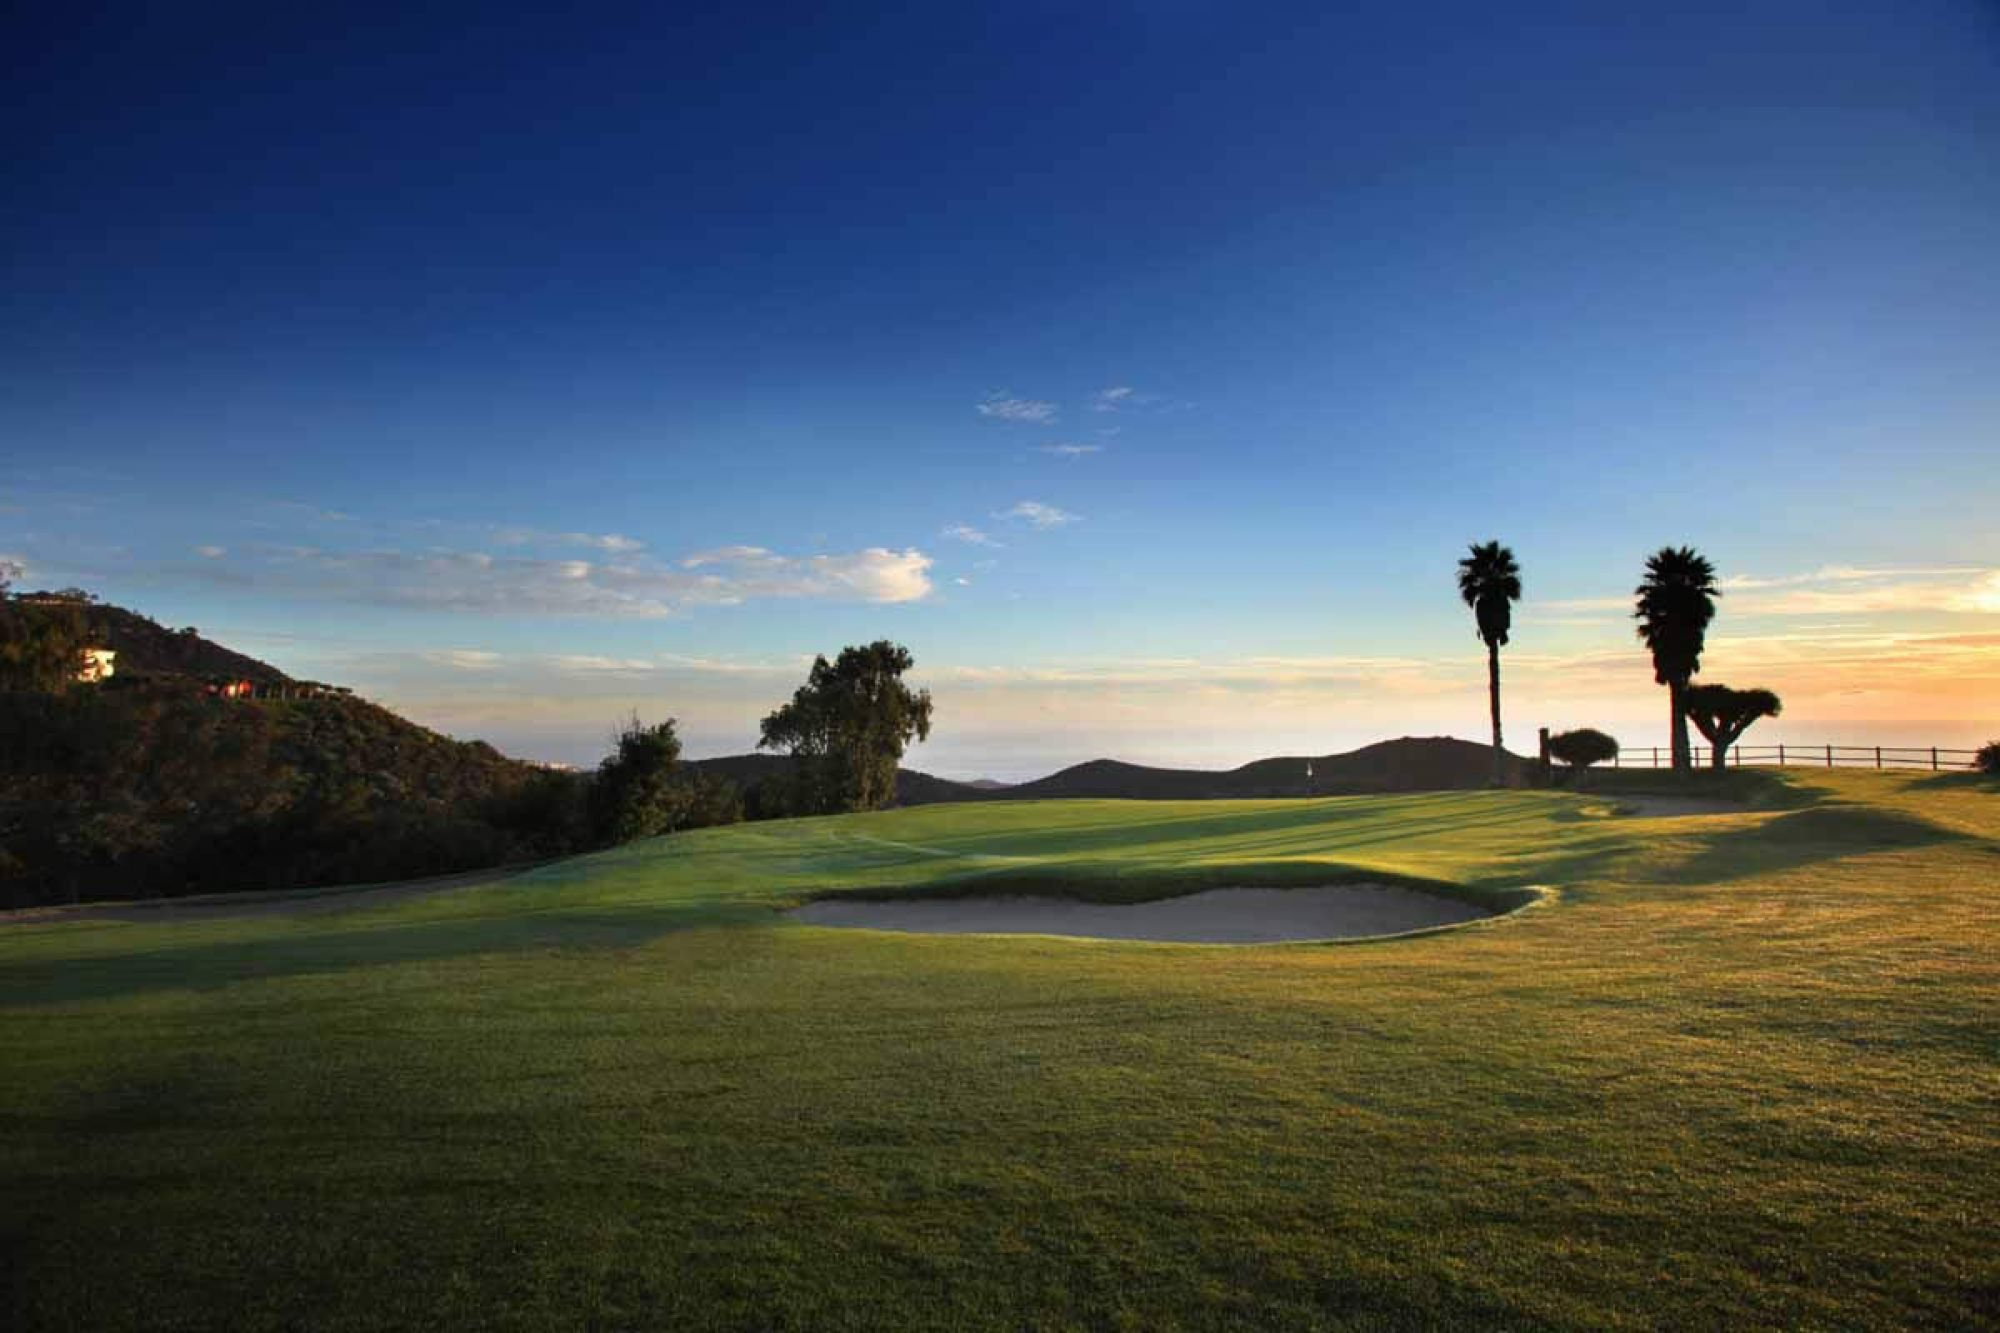 All The Real Club de Golf de Las Palmas's scenic golf course within marvelous Gran Canaria.